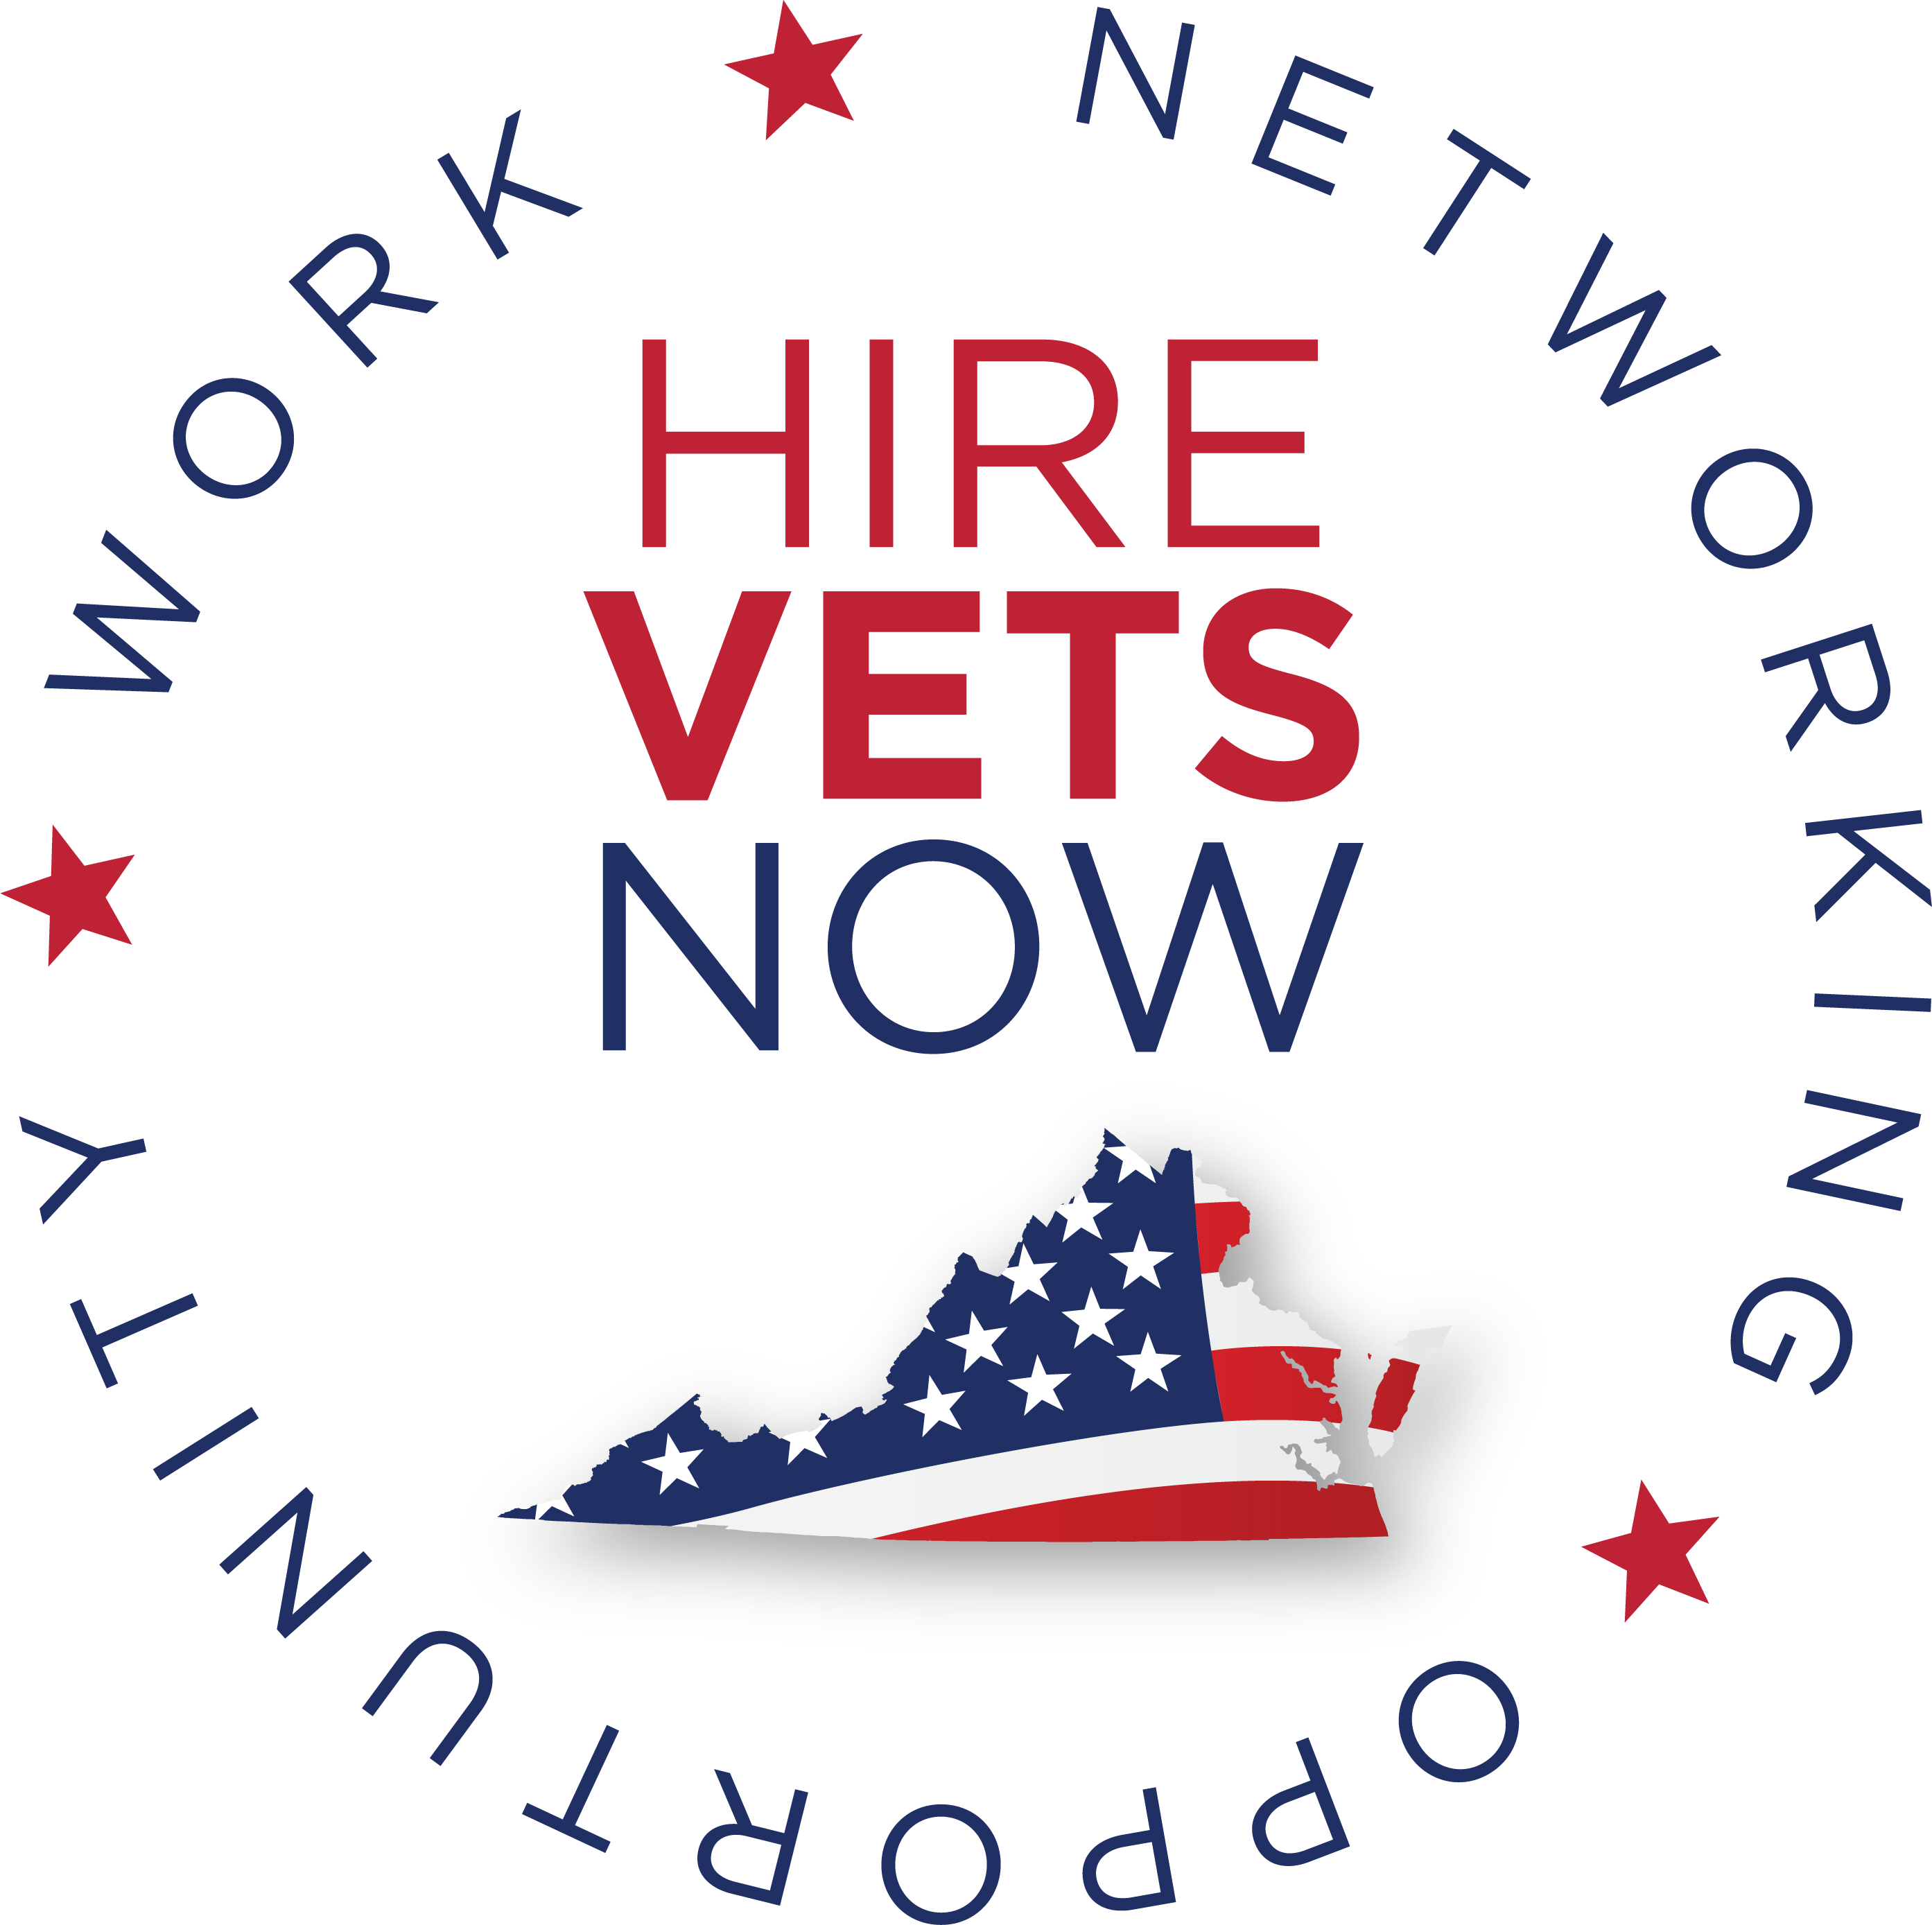 Hire Vets Now